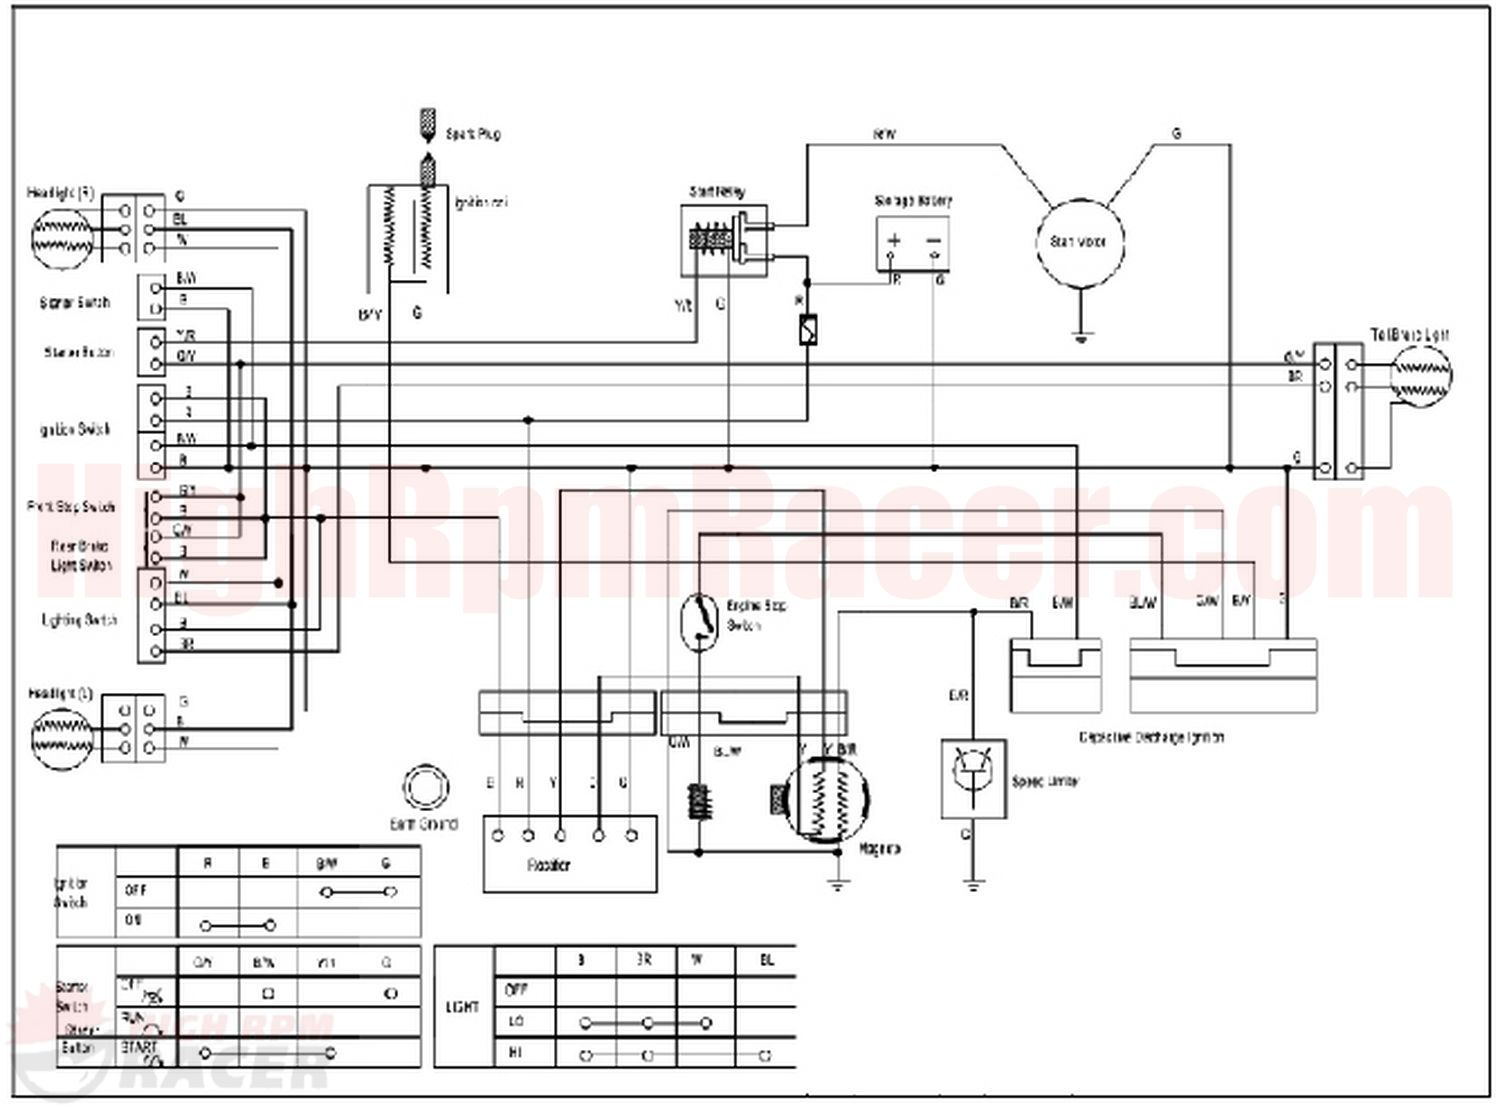 Wiring Diagram 110Cc Atv Taotao And Tao 125 At Tao Tao 125 Atv - Chinese Atv Wiring Diagram 110